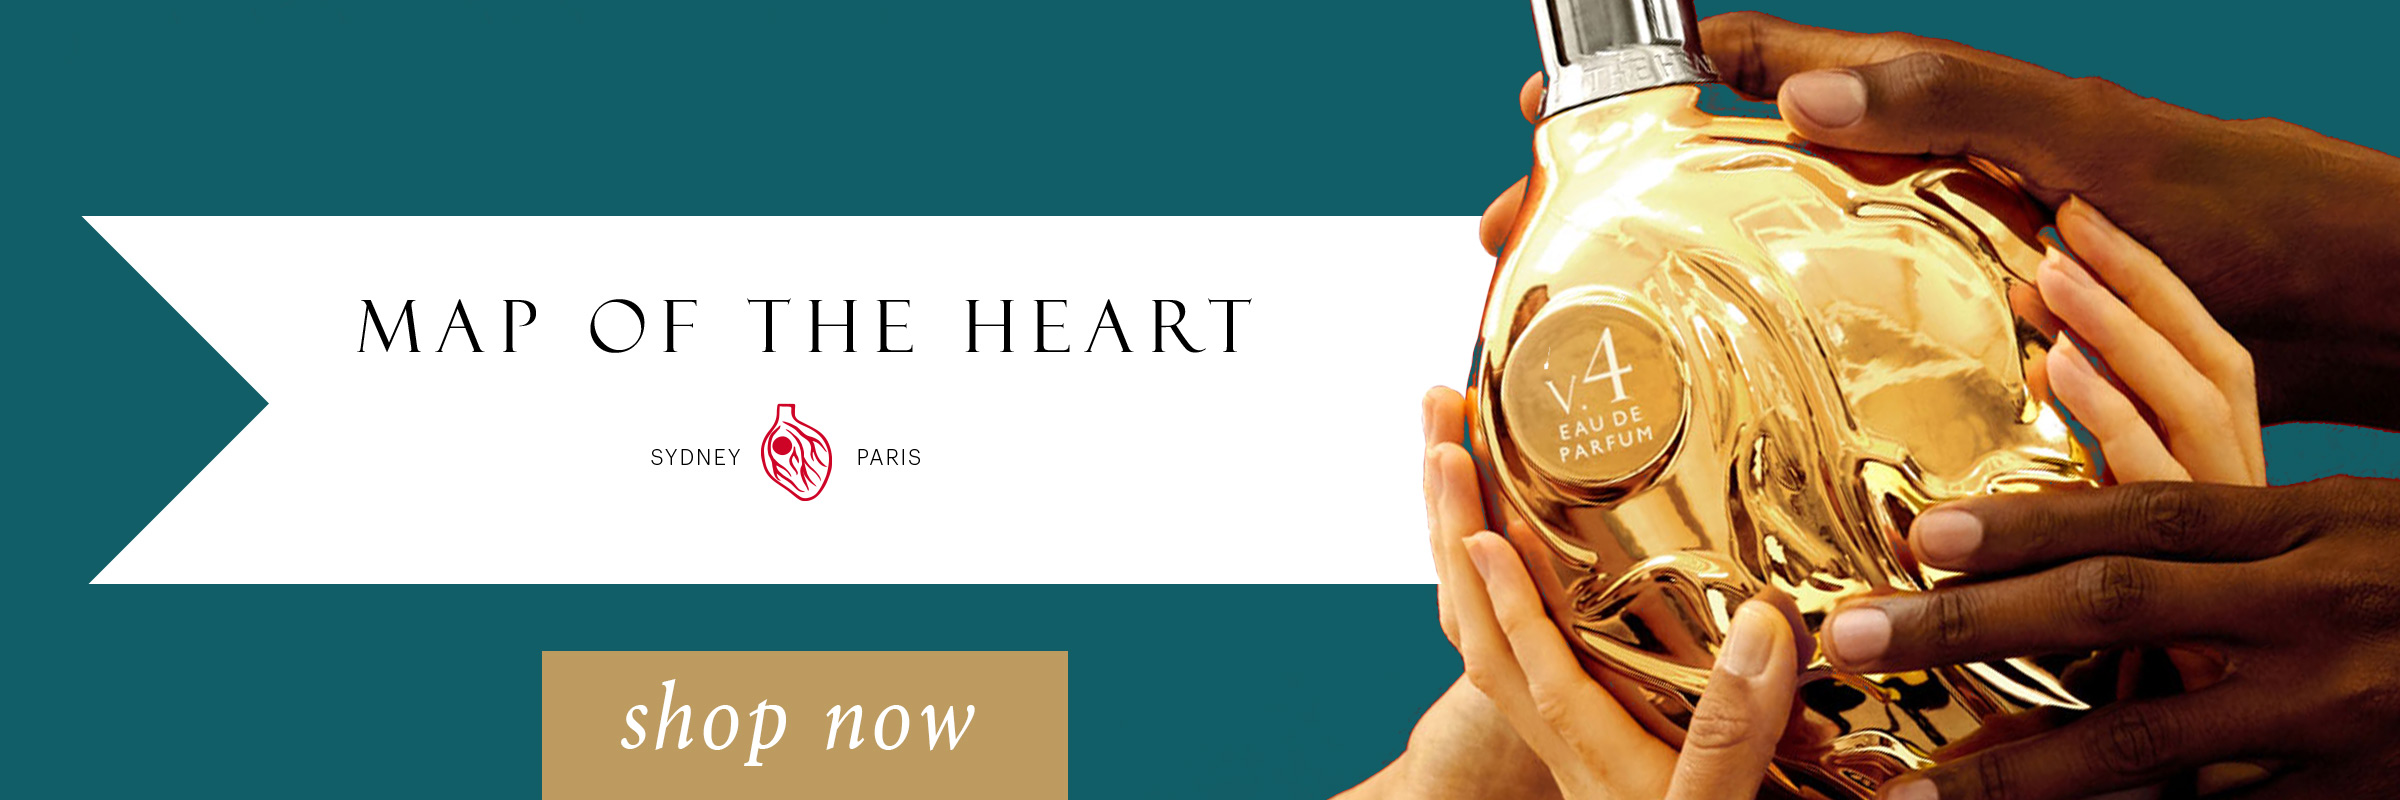 Map of the heart perfume